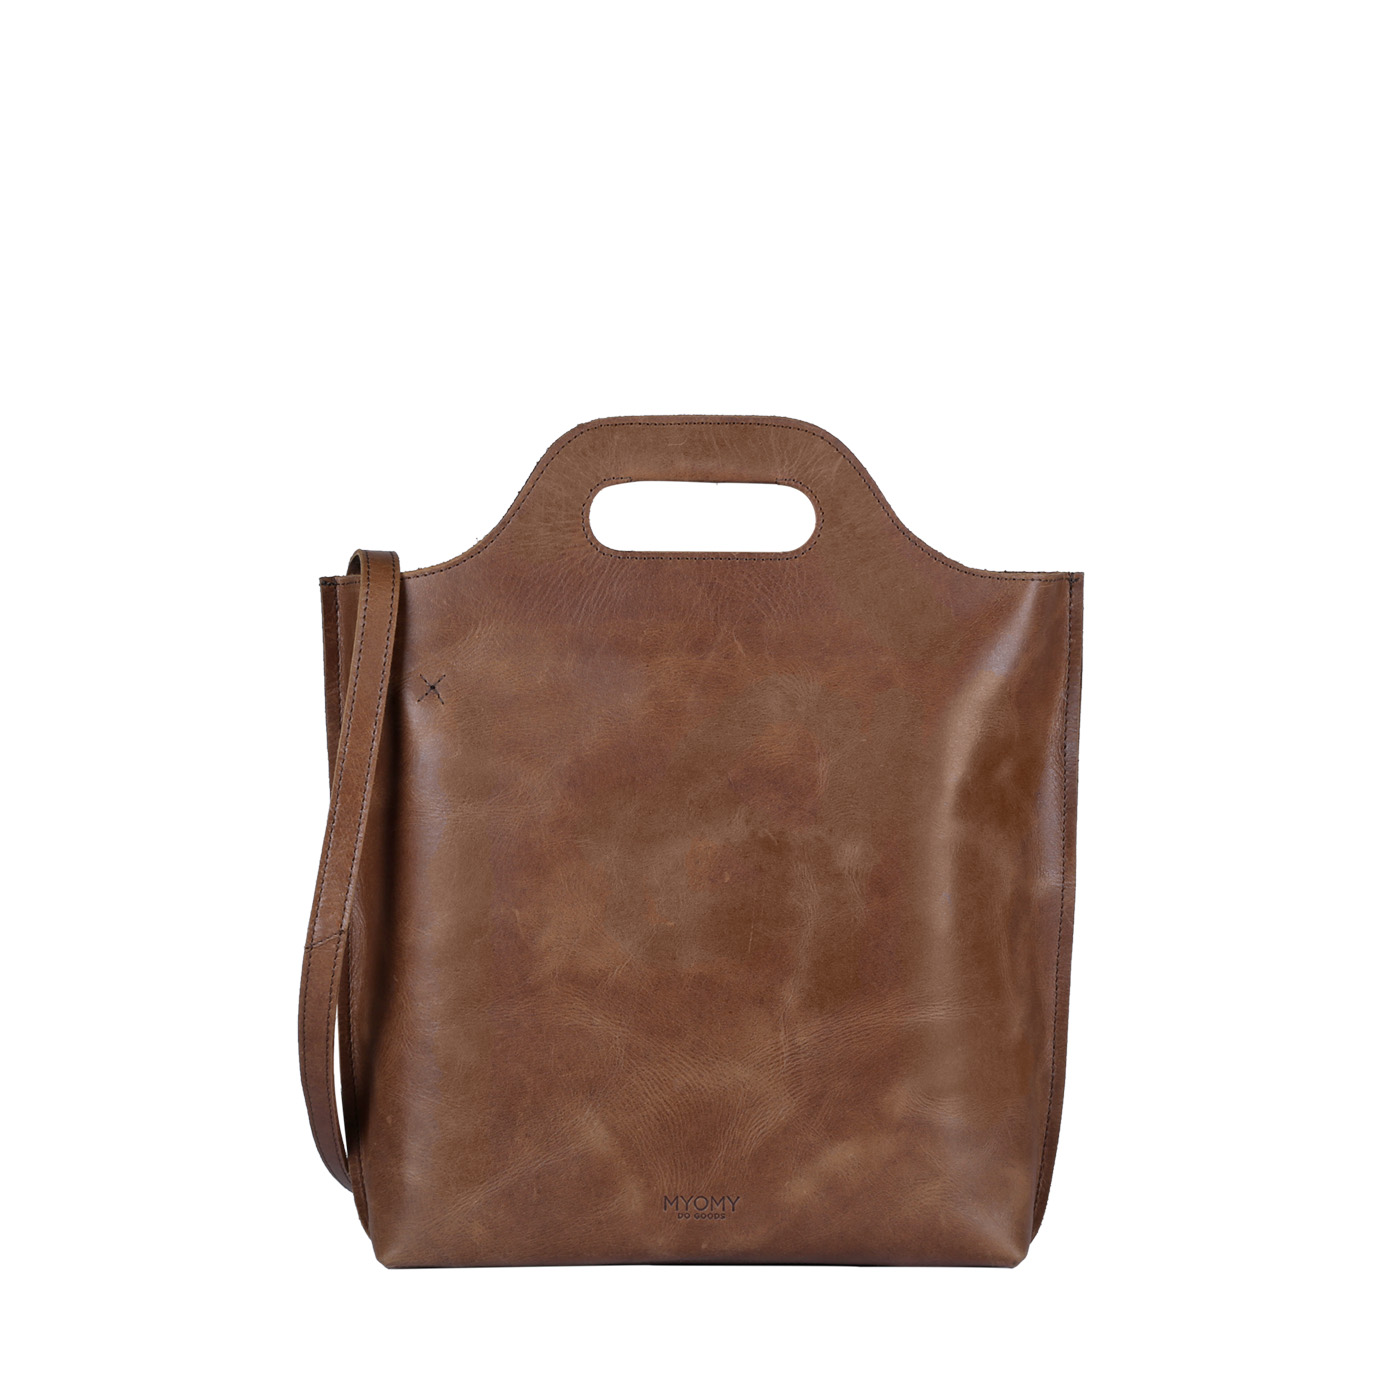 MY CARRY BAG shopper medium - hunter waxy original